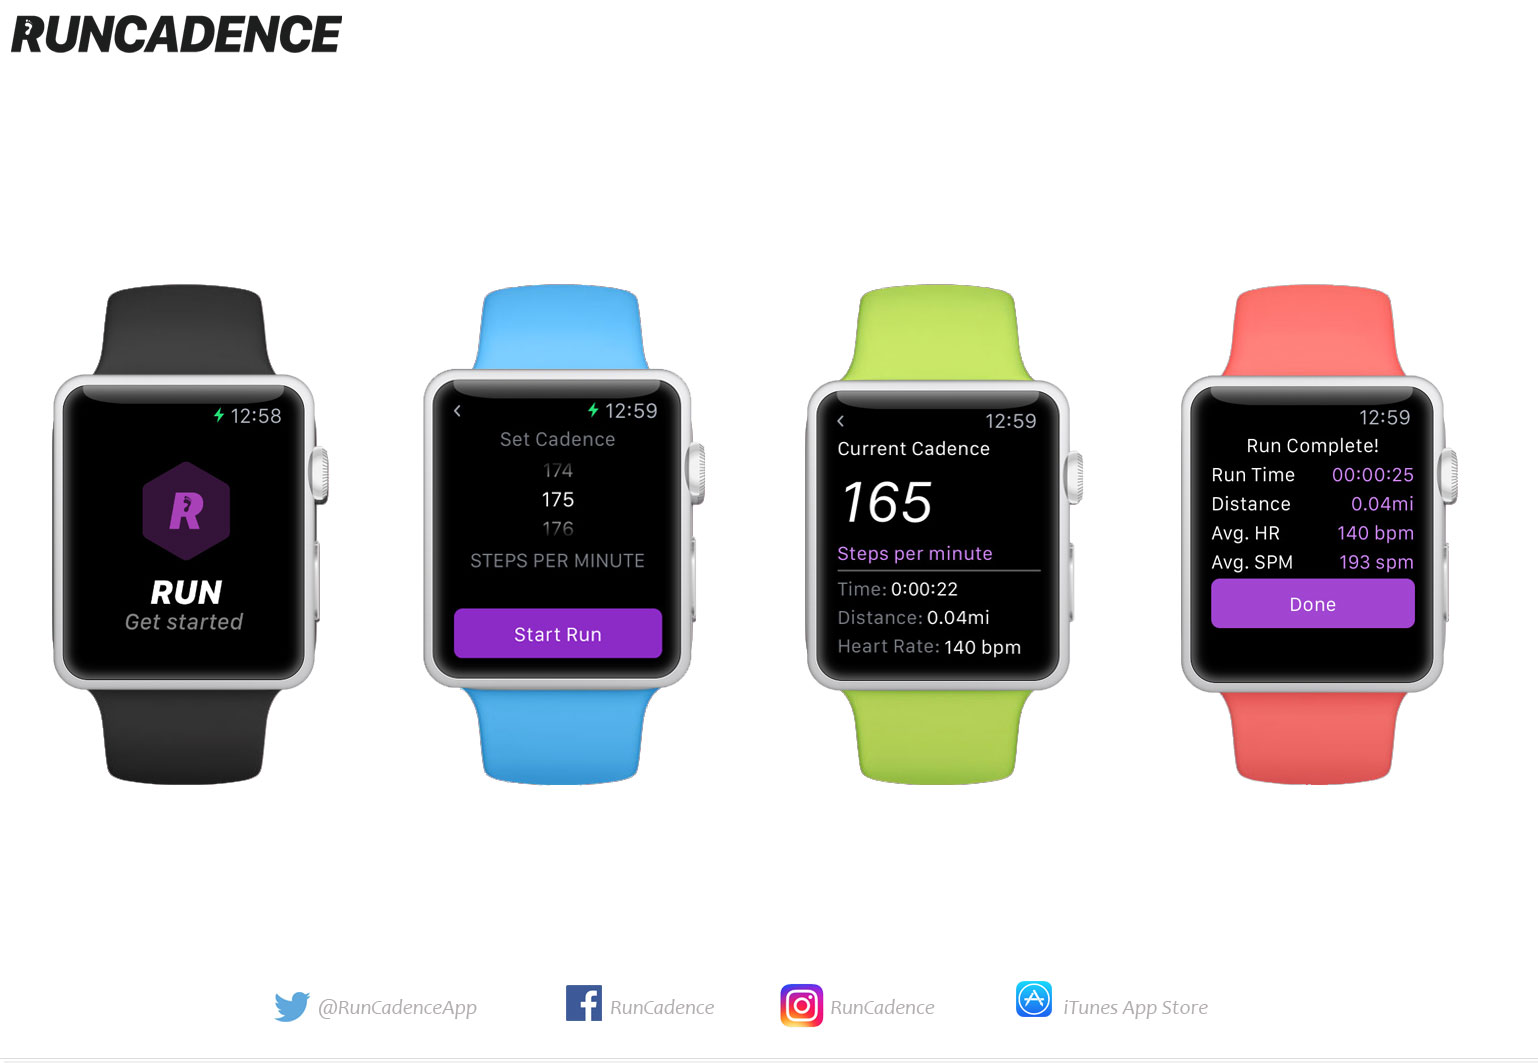 RunCadence Watch